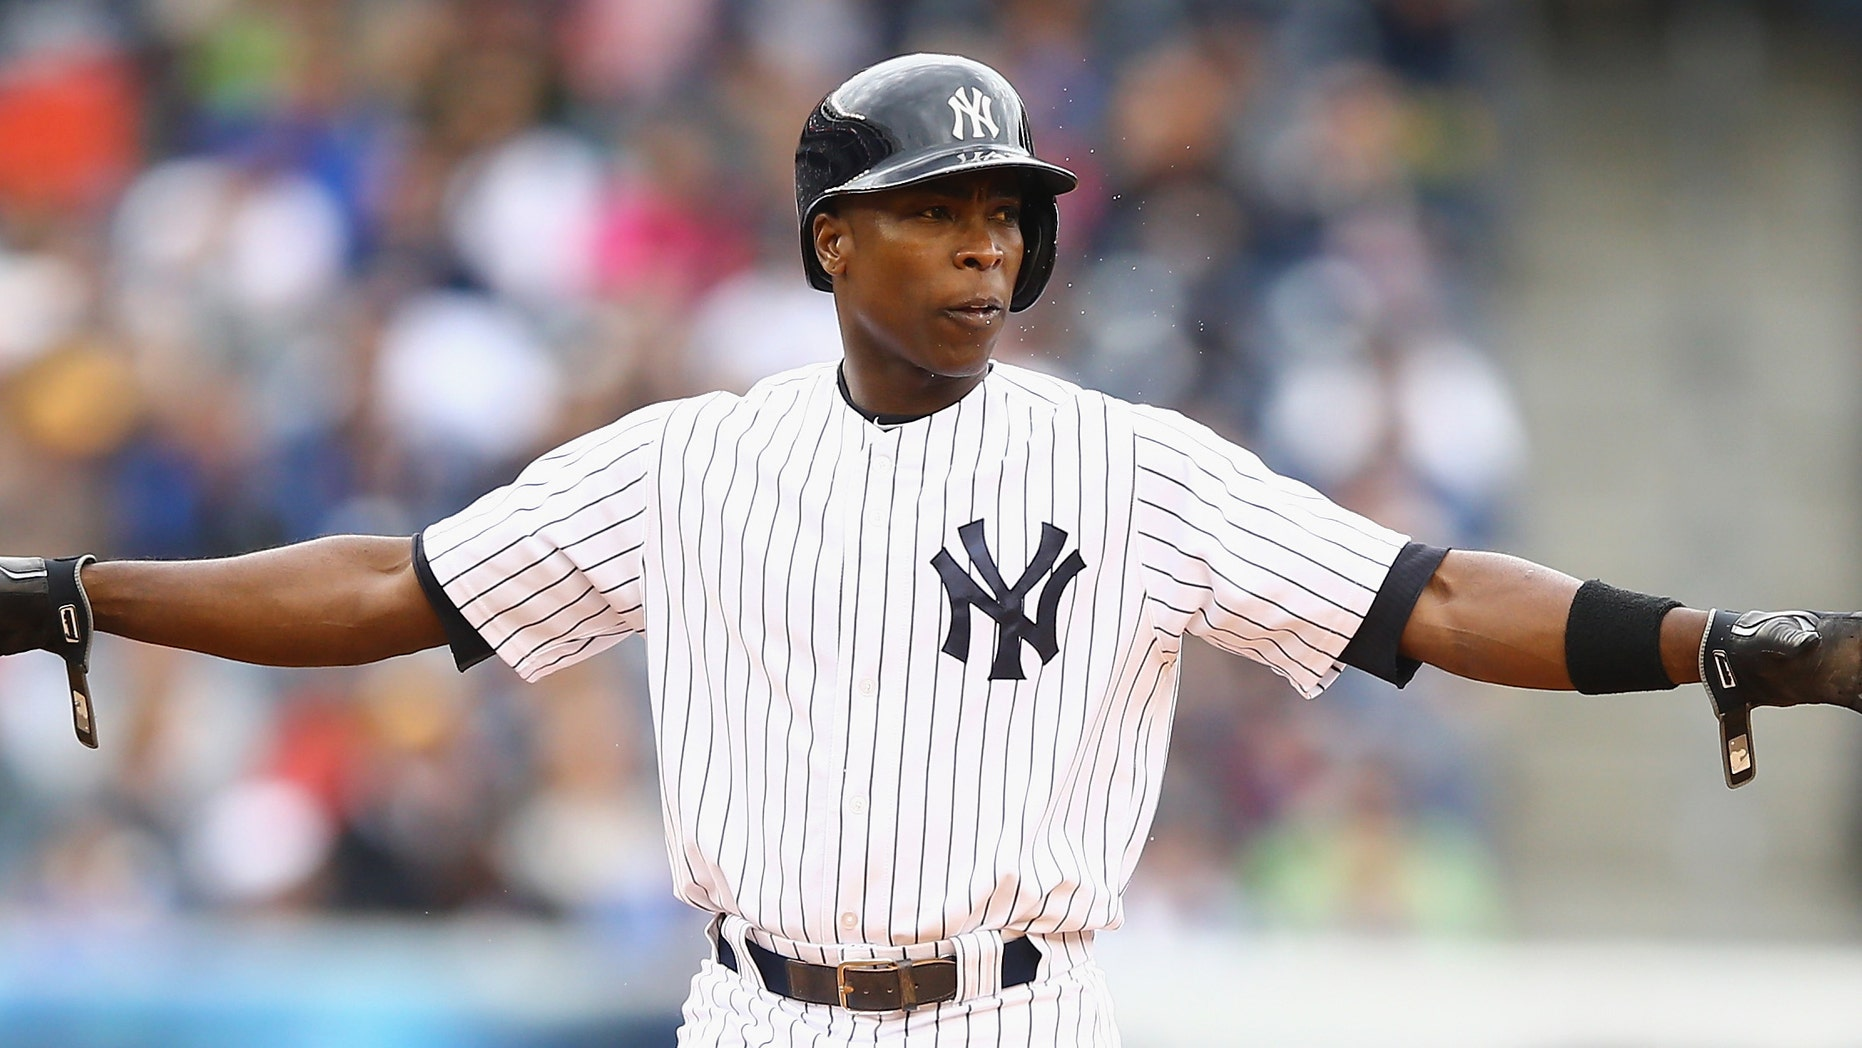 NEW YORK, NY - MAY 04: Alfonso Soriano #12 of the New York Yankees reacts after hitting a double against the Tampa Bay Rays  during their game at Yankee Stadium on May 4, 2014 in the Bronx borough of New York City.  (Photo by Al Bello/Getty Images)